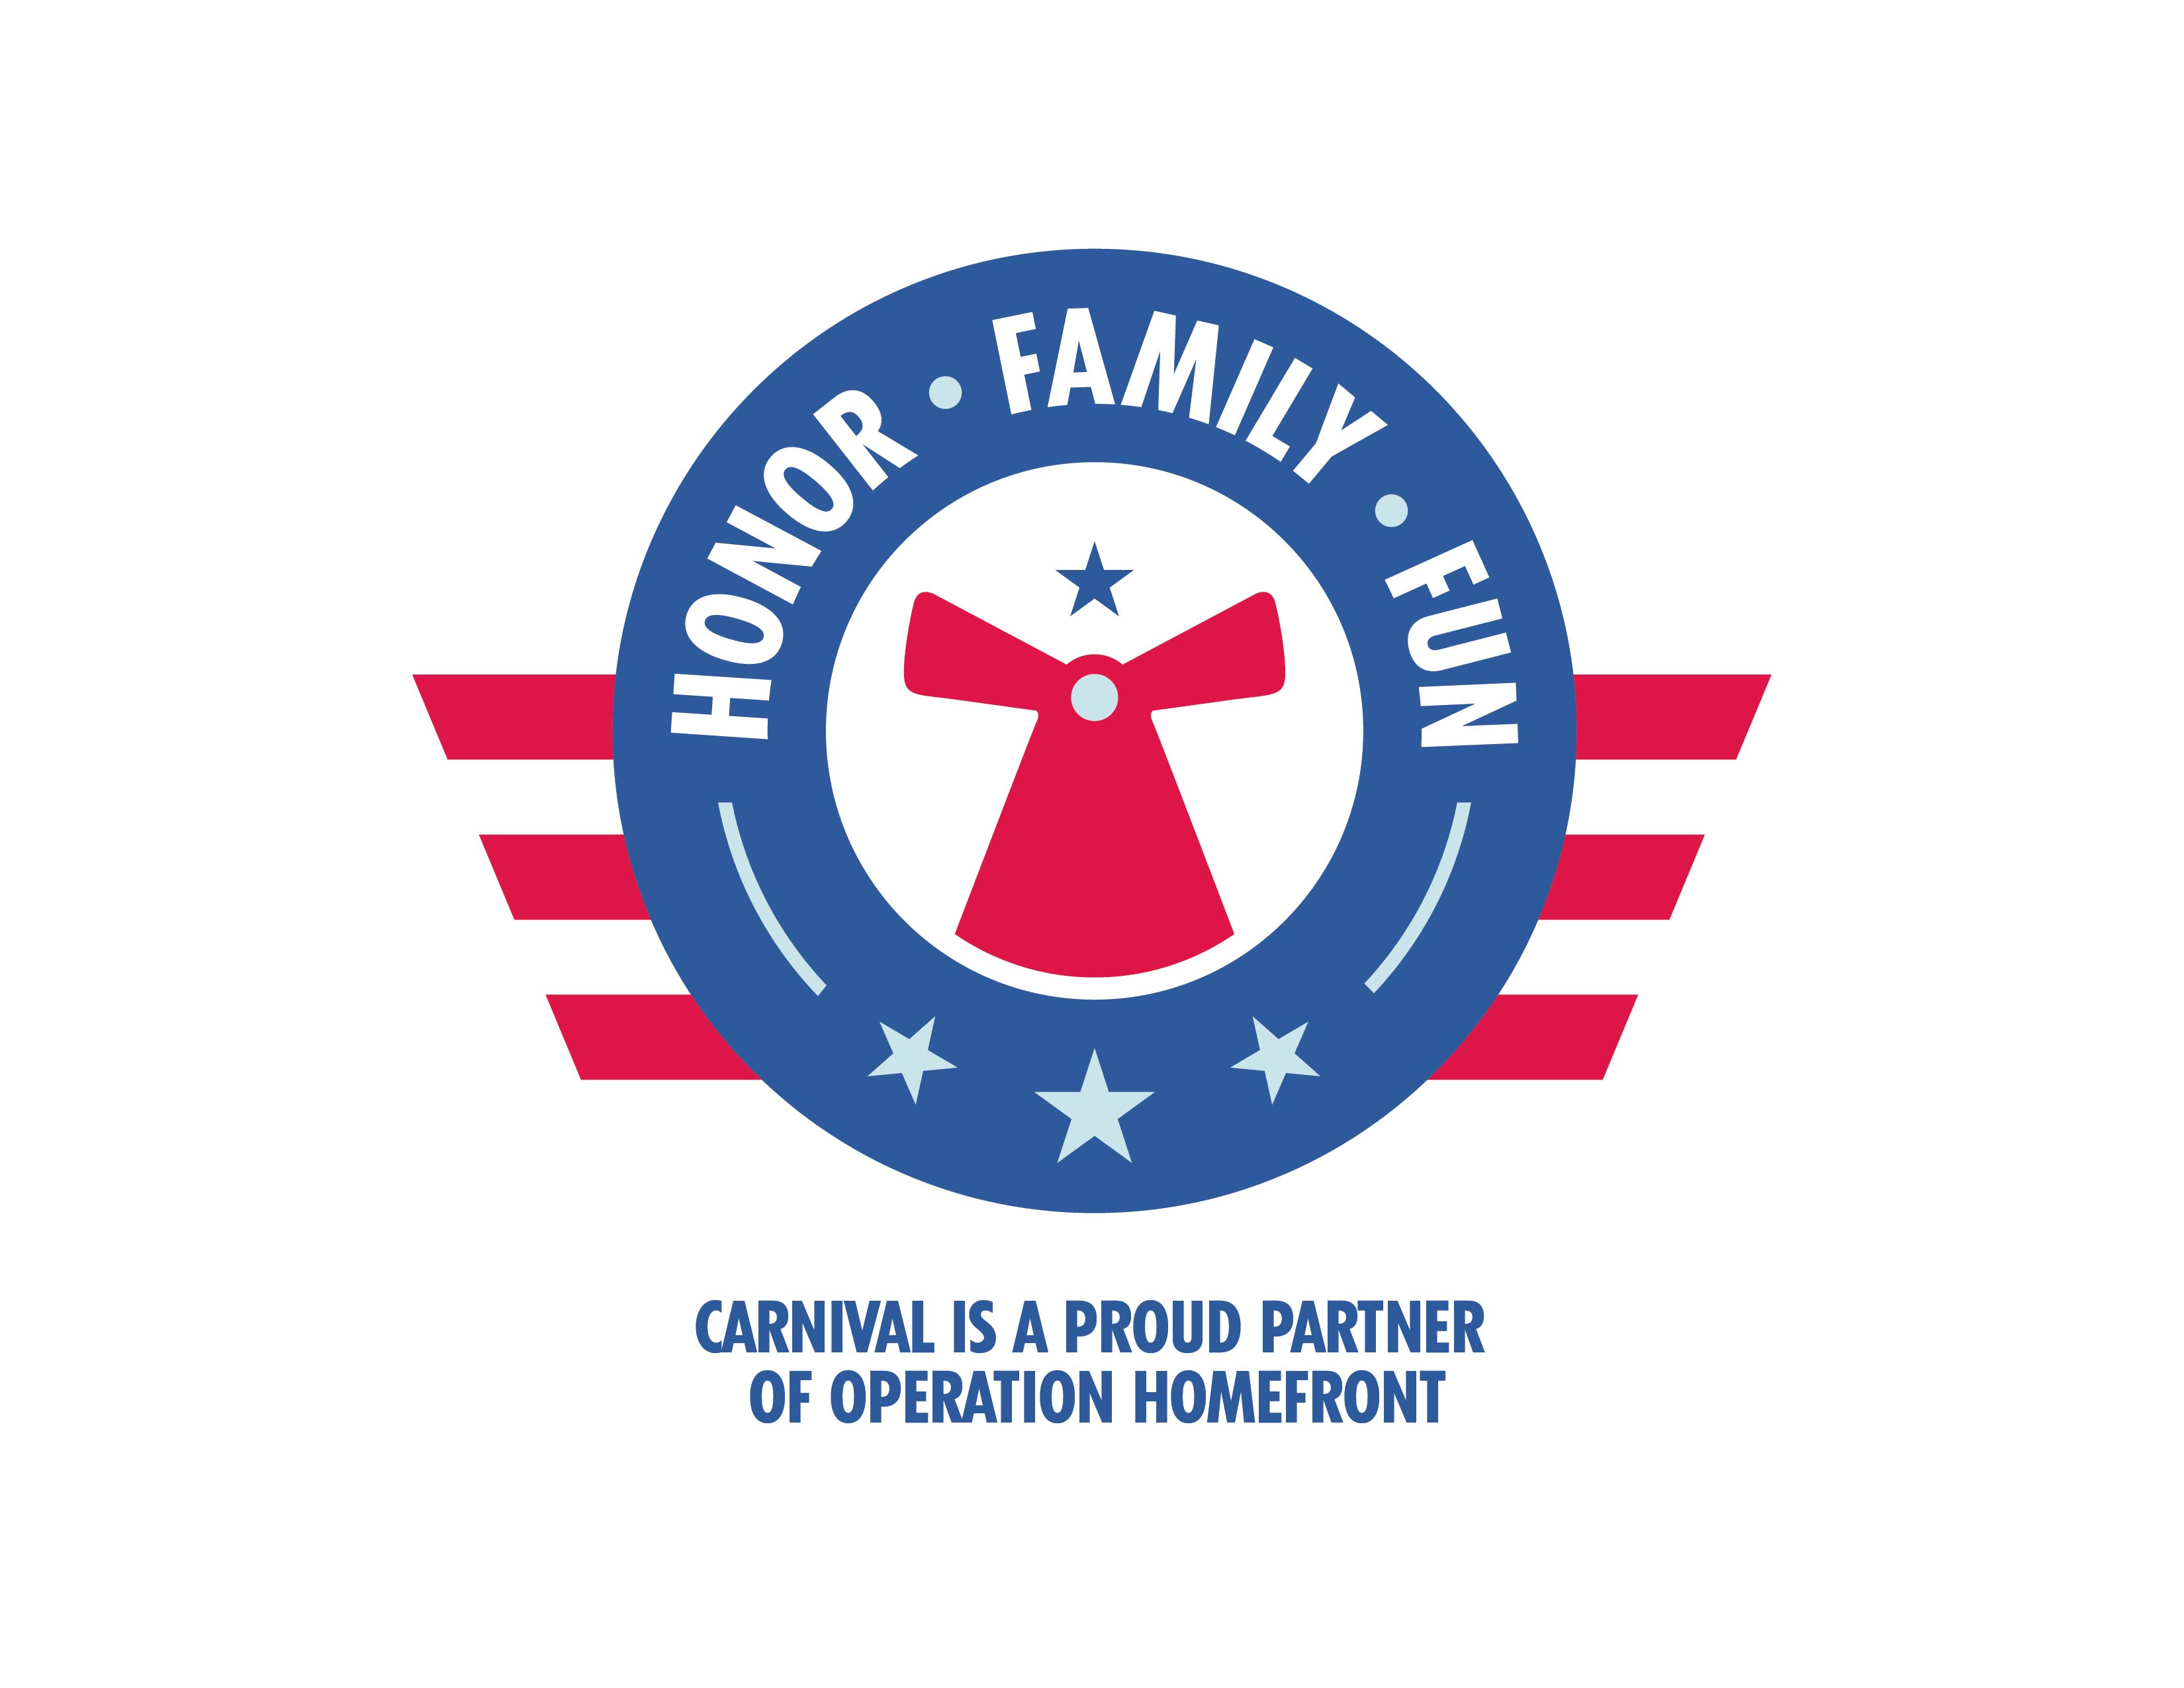 Carnival Cruise Line, Operation Homefront, And Seven-Time Grammy Award-Winning Superstar Carrie Underwood Launch Honor. Family. Fun. Initiative To Support Military Families